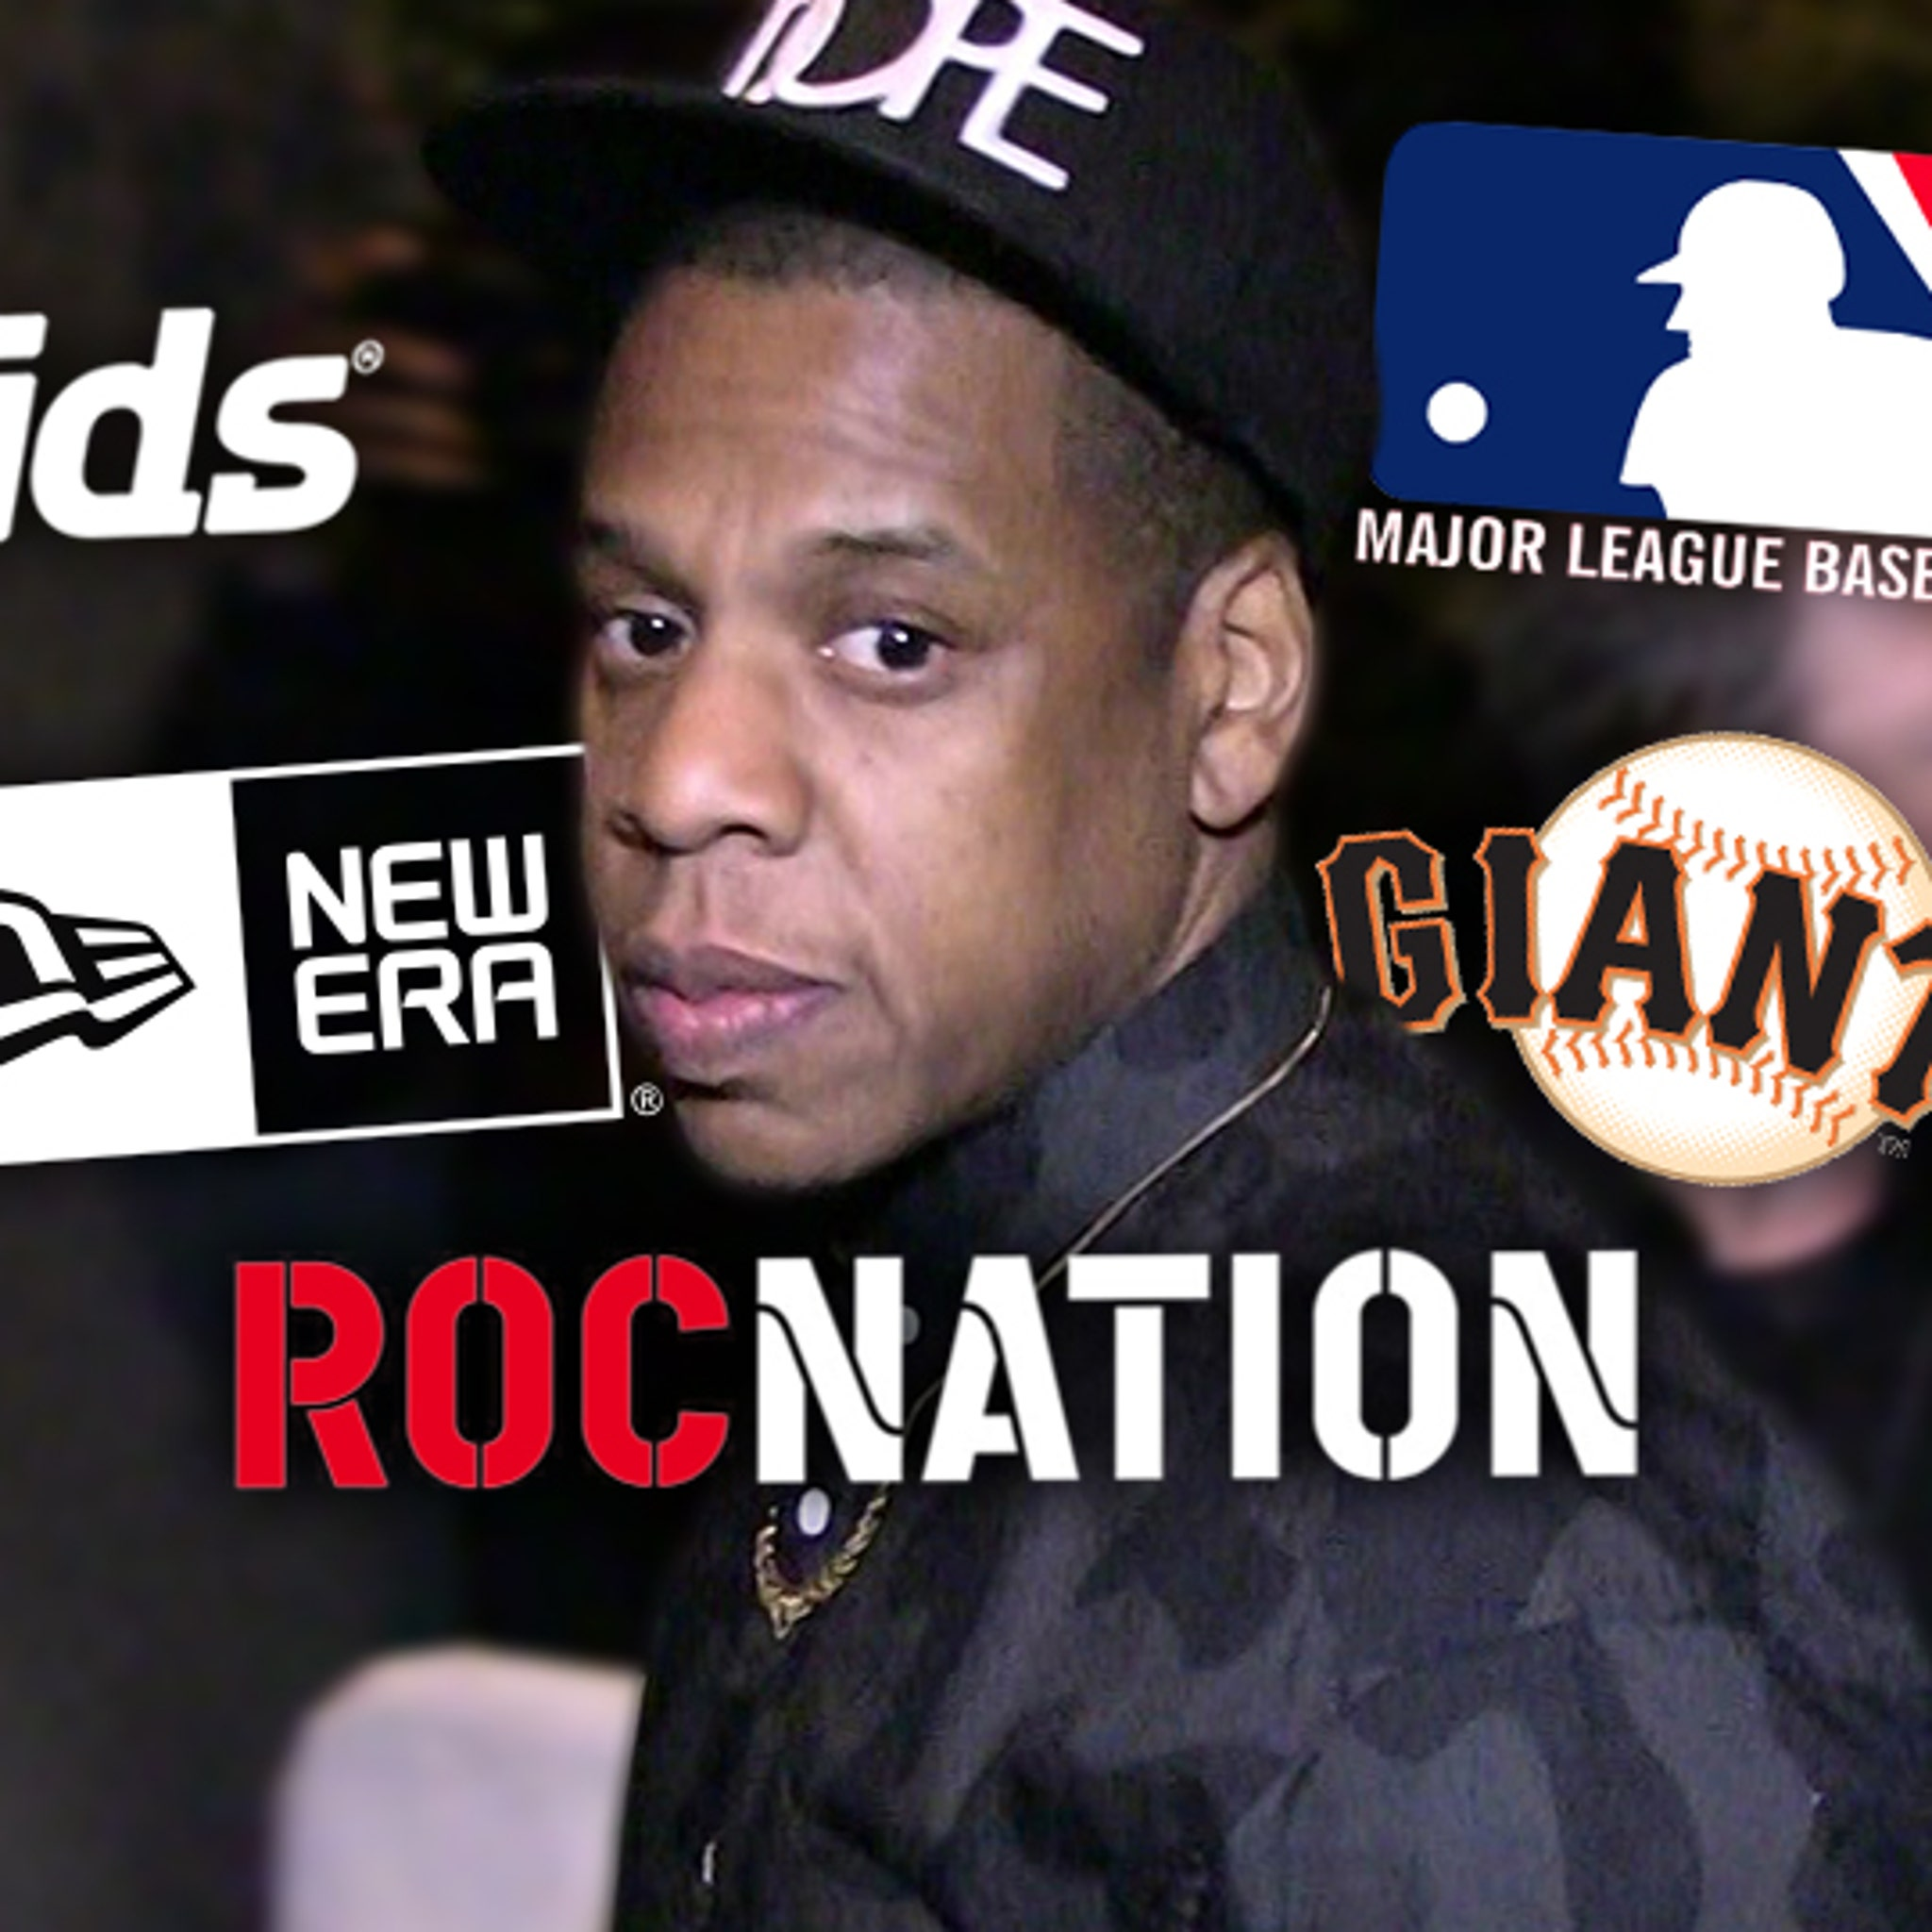 Jay Z Sued for Using 'ROC NATION' Logo